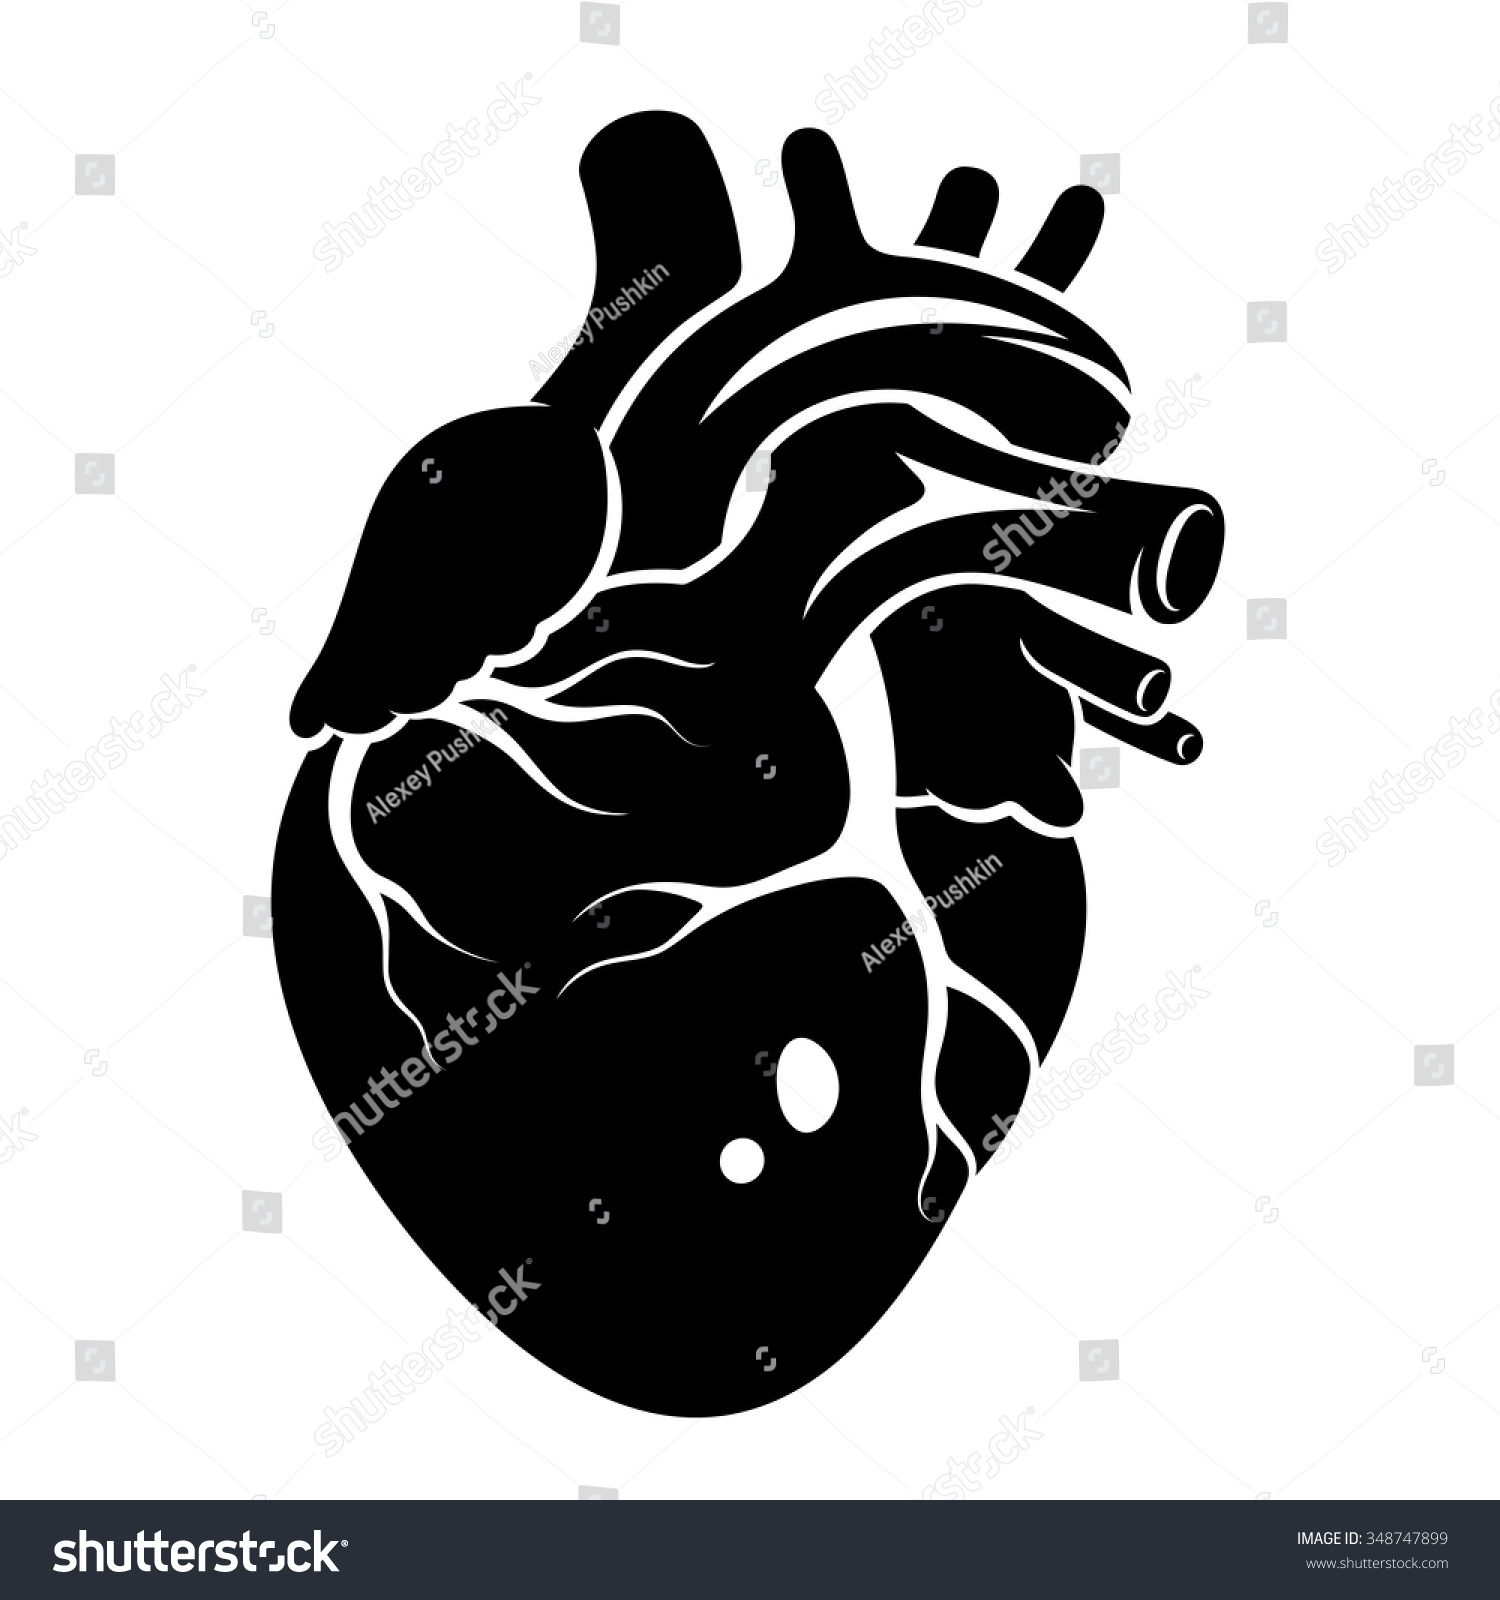 Vector heart black and white